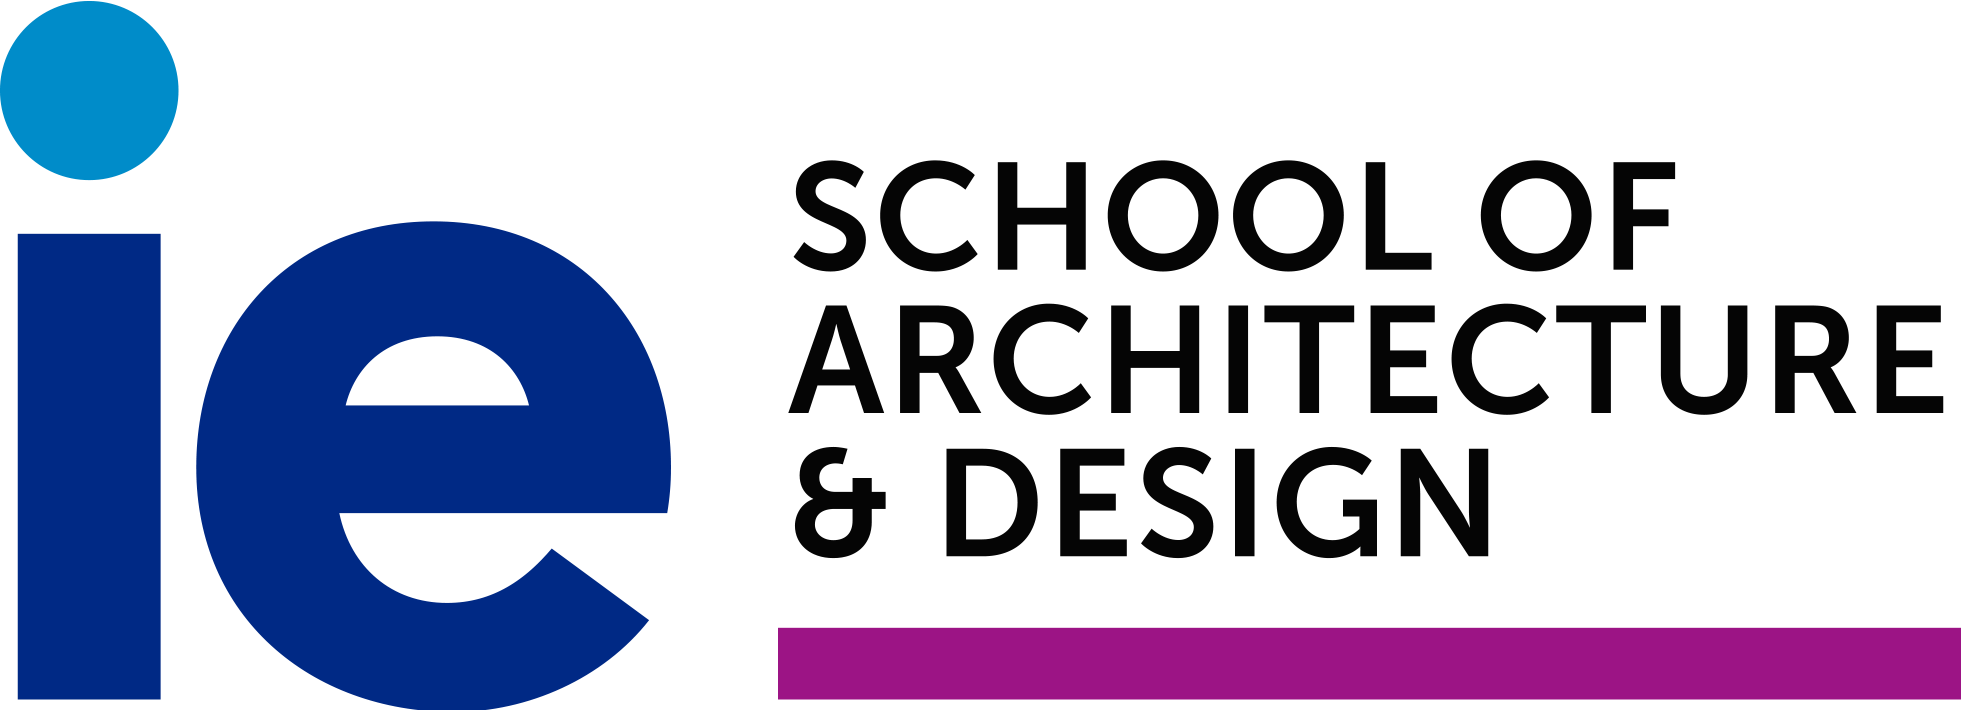 School of architecture and design